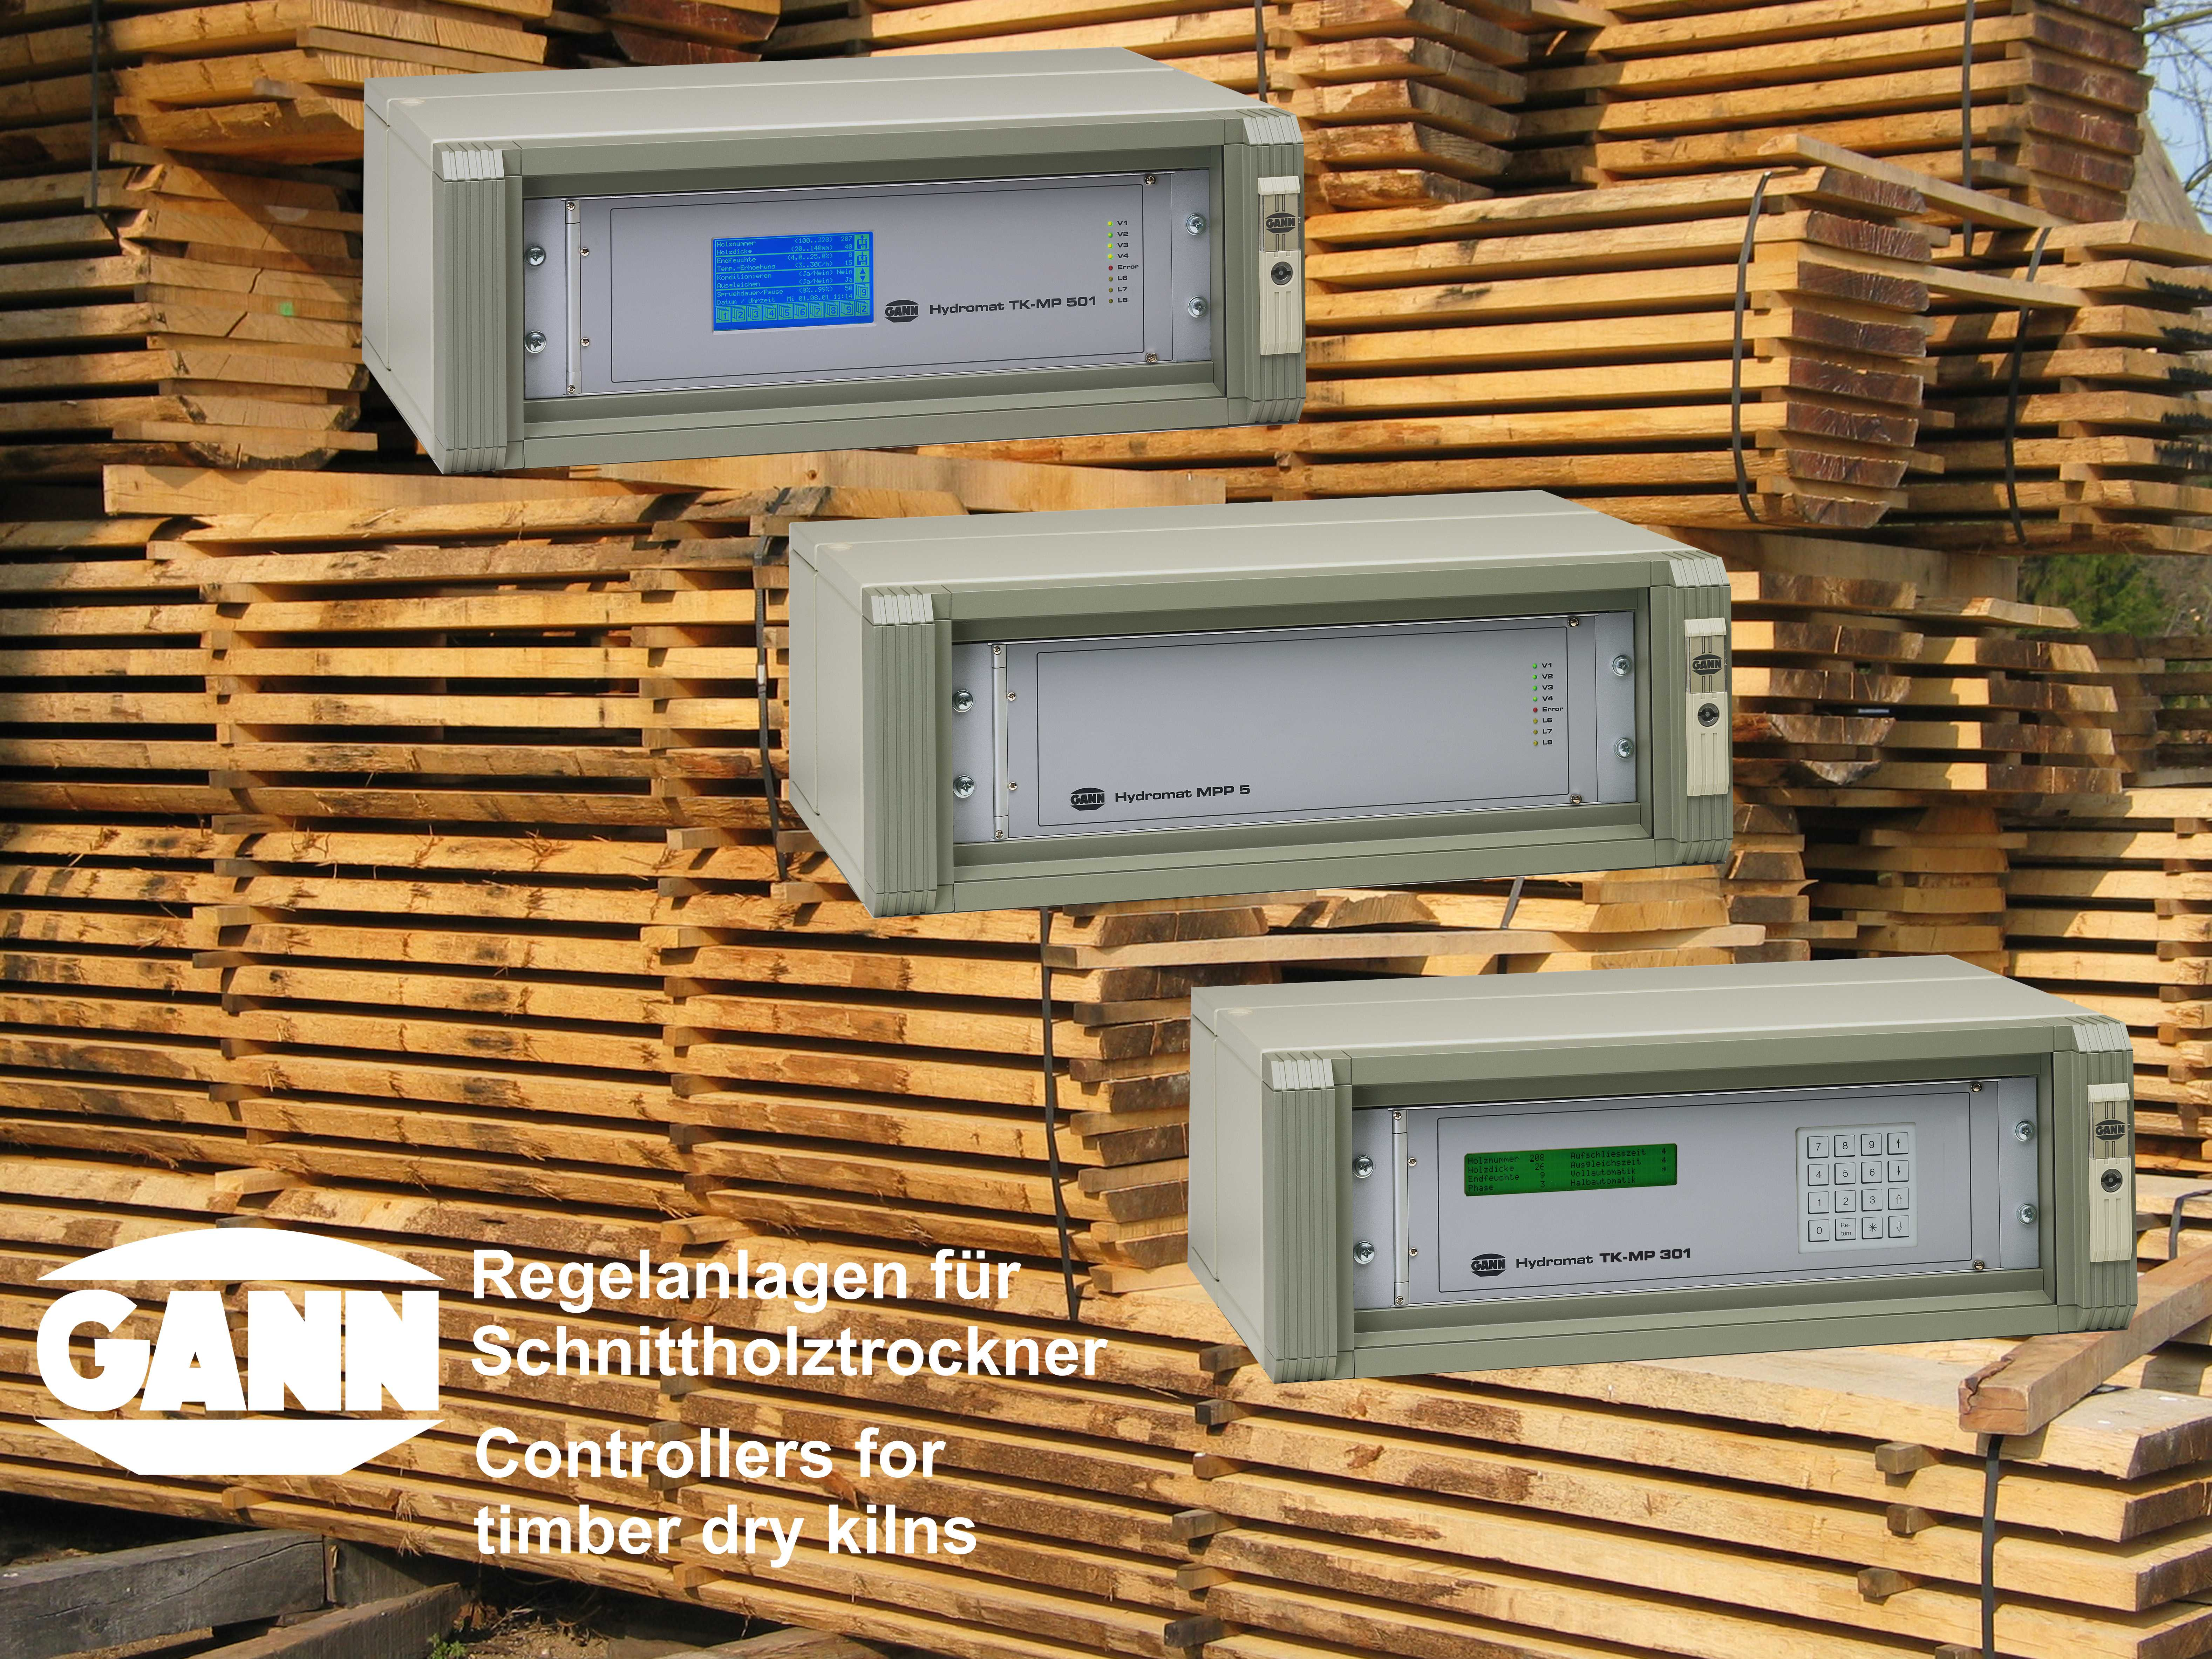 Moisture meters and company logo in front of background image showing stacks of sawn timber